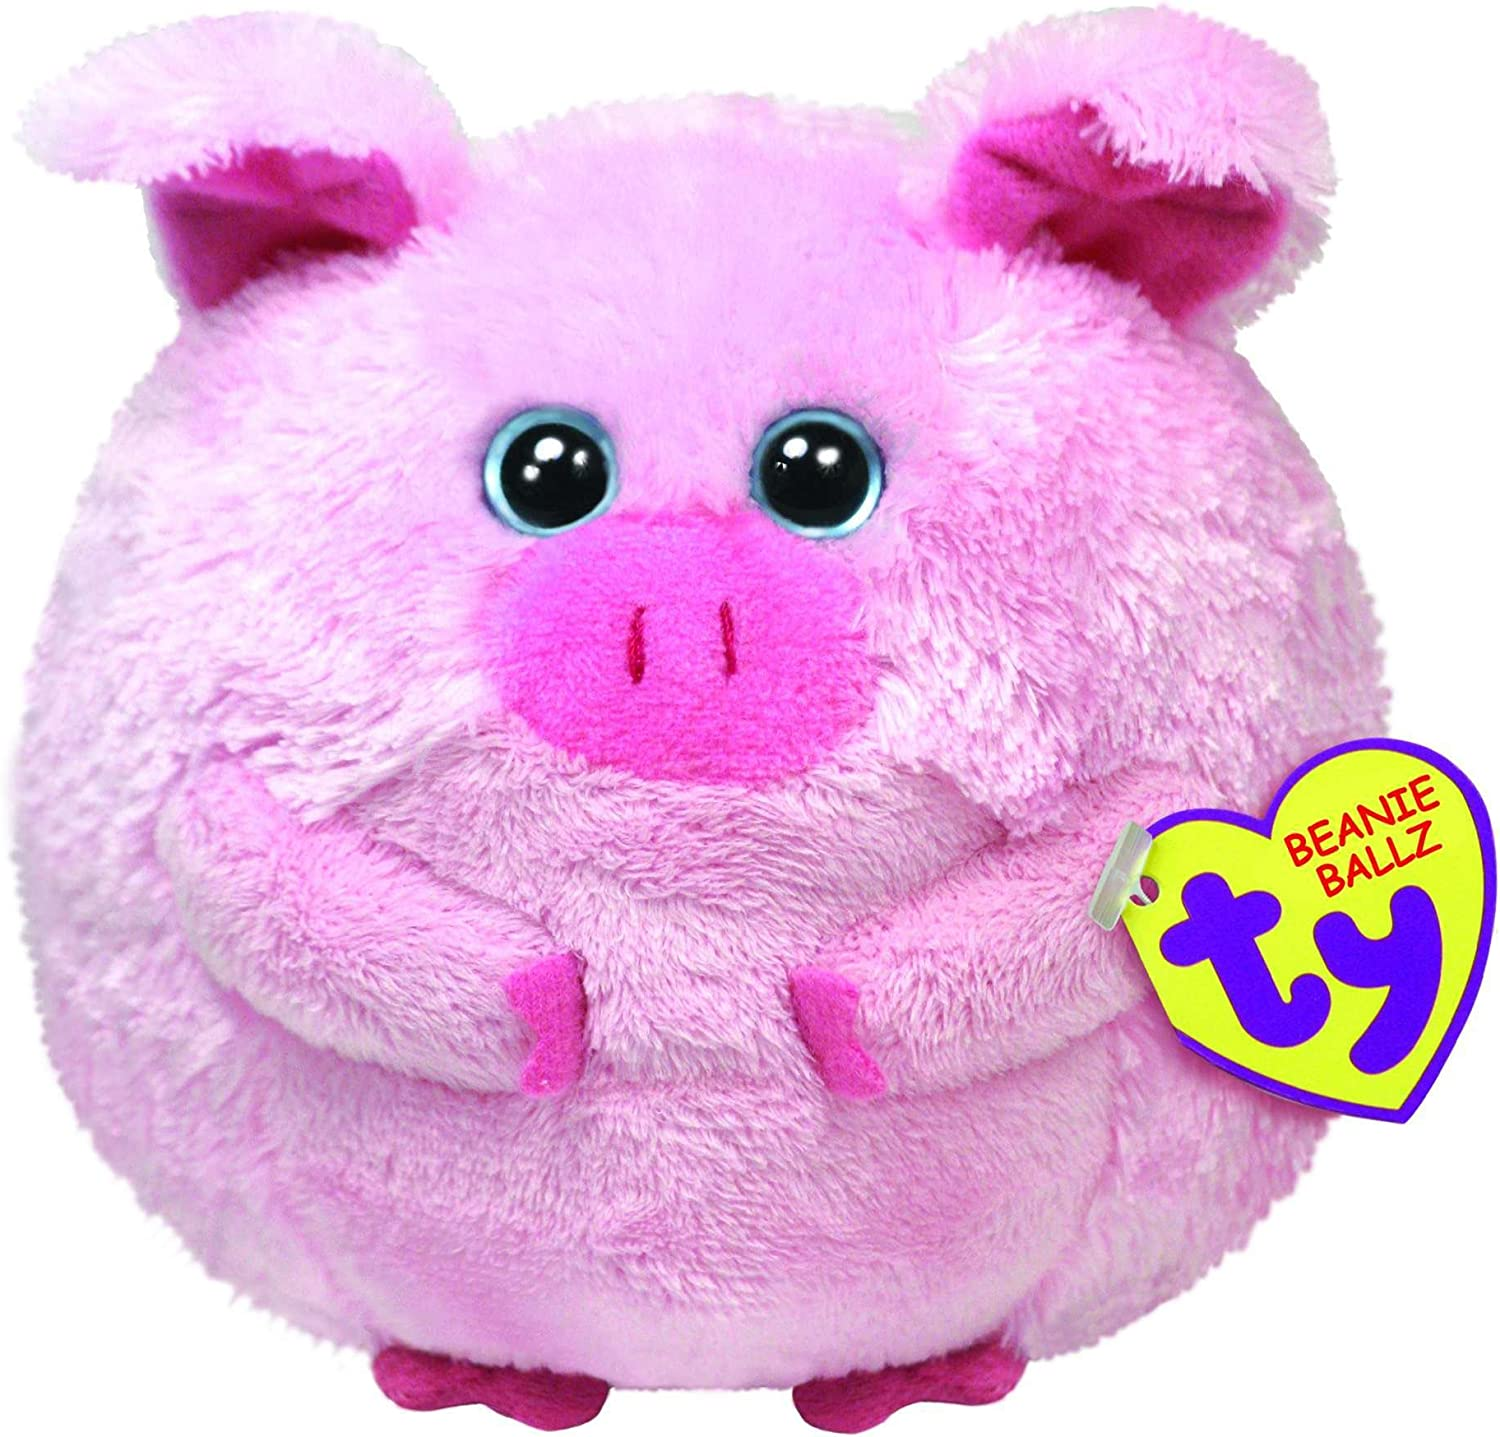 Licensed Beanie Ballz Large Size Stuffed Animal by TY